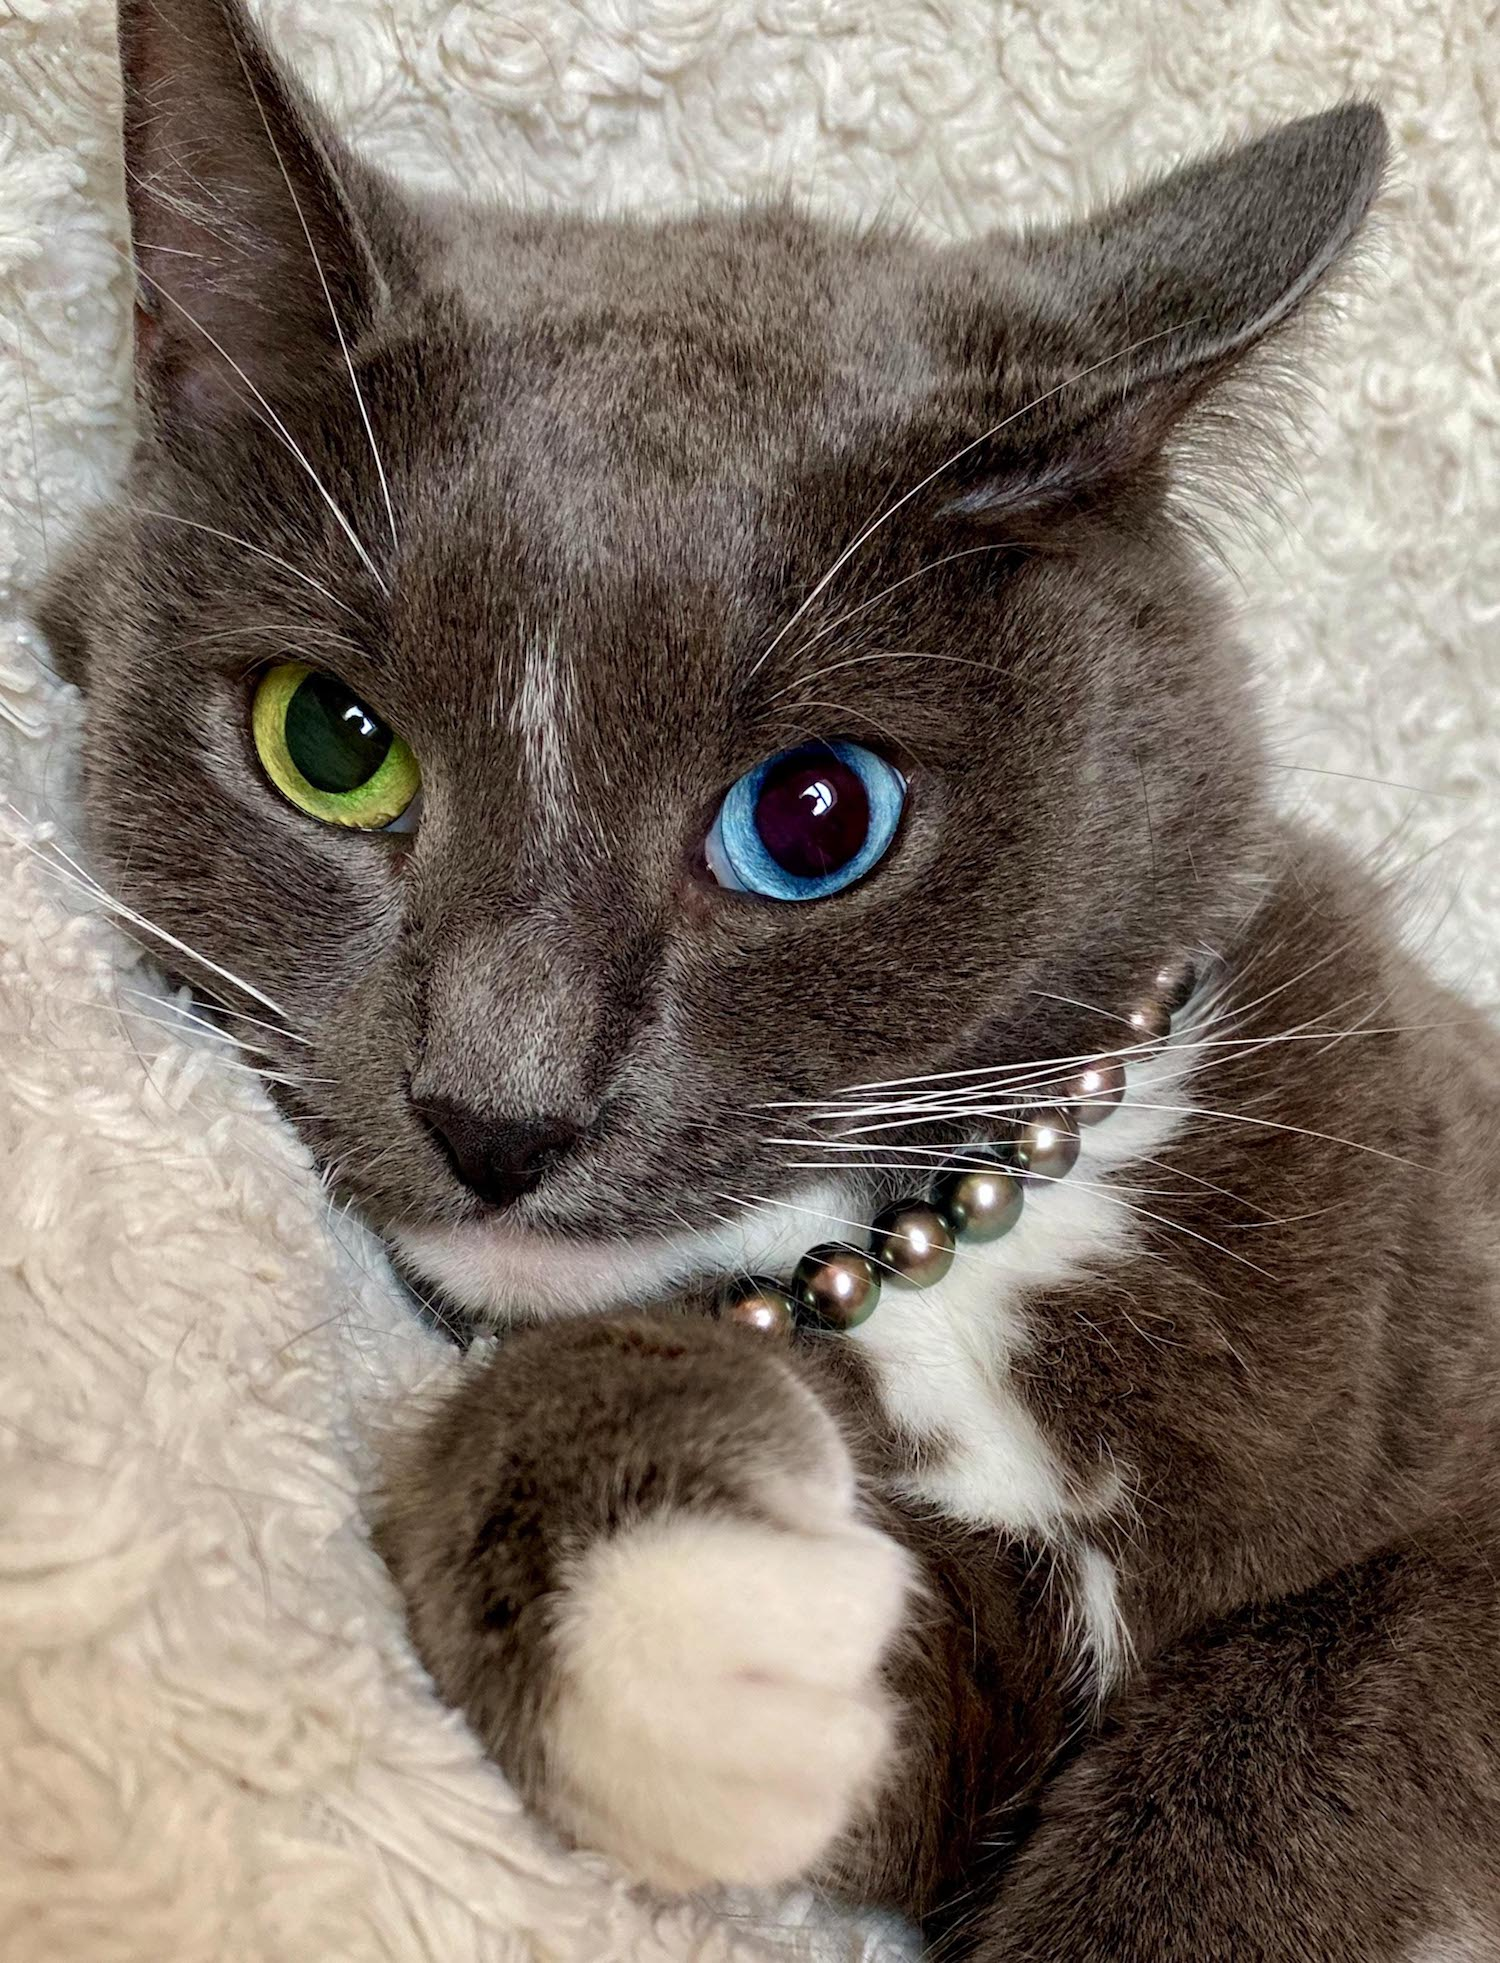 CATERS_CAT_WITH_ODD_EYES_-6_3395963.jpg?profile=RESIZE_930x